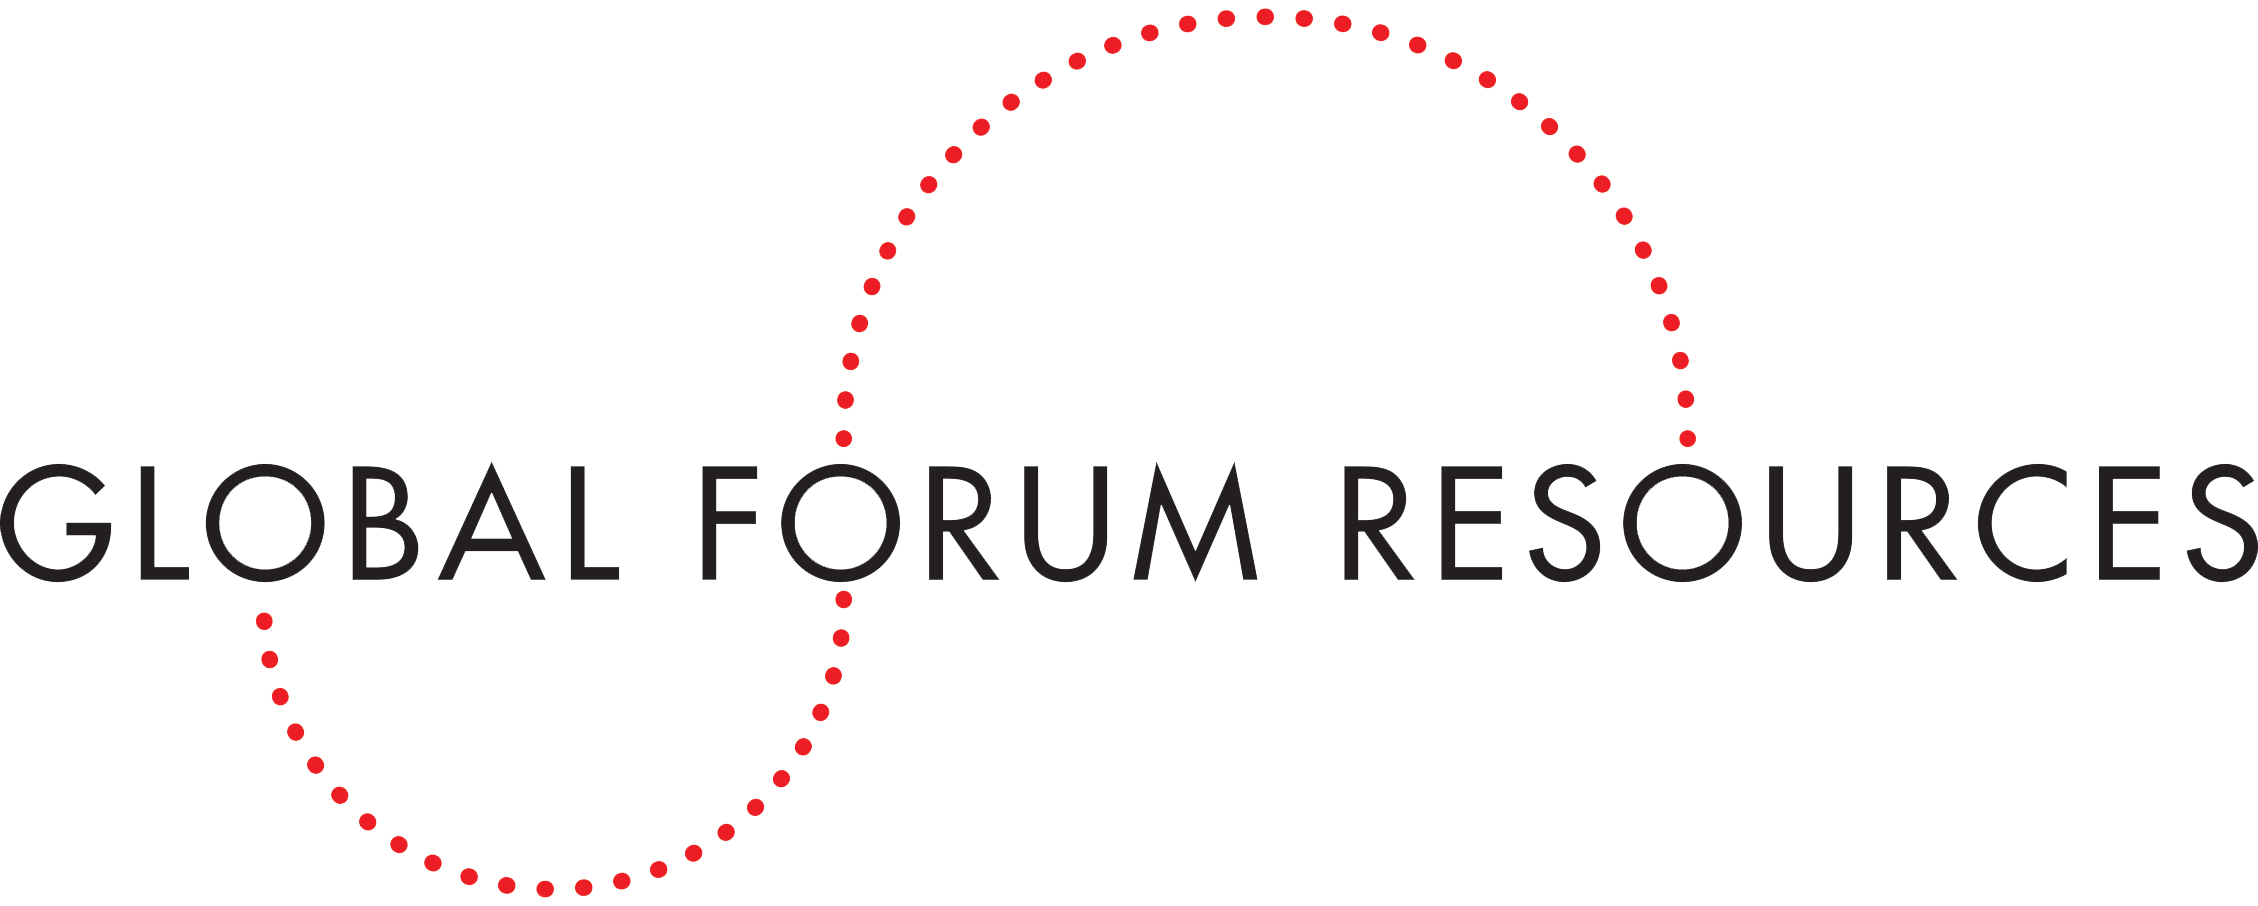 Global Forum Resources